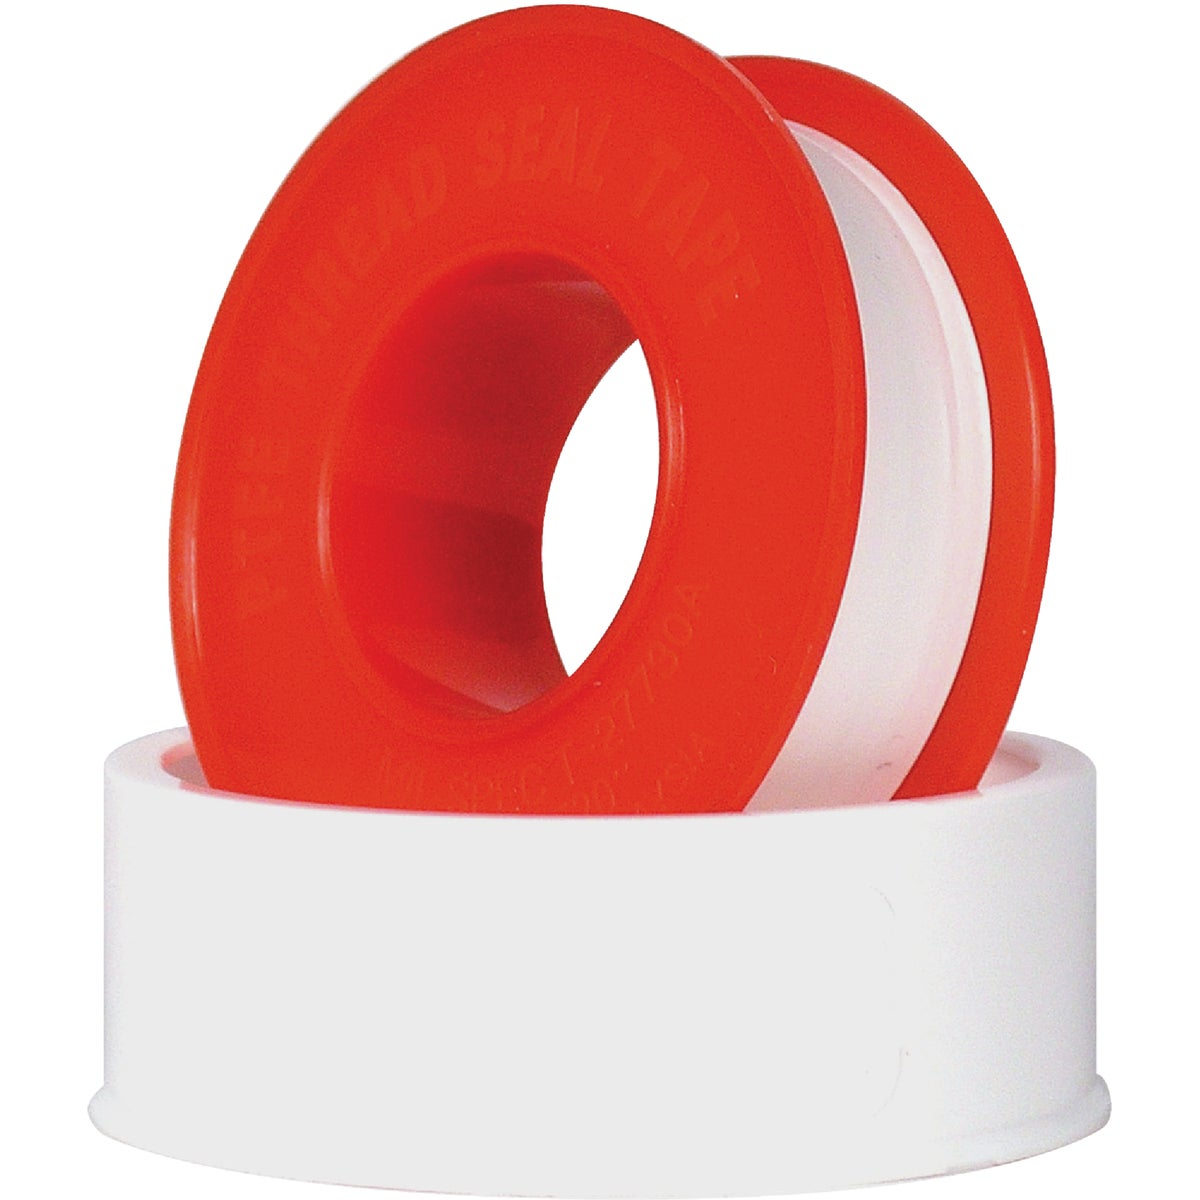 1/2X260 PTFE TAPE - 017072-350H by Wm H Harvey Co